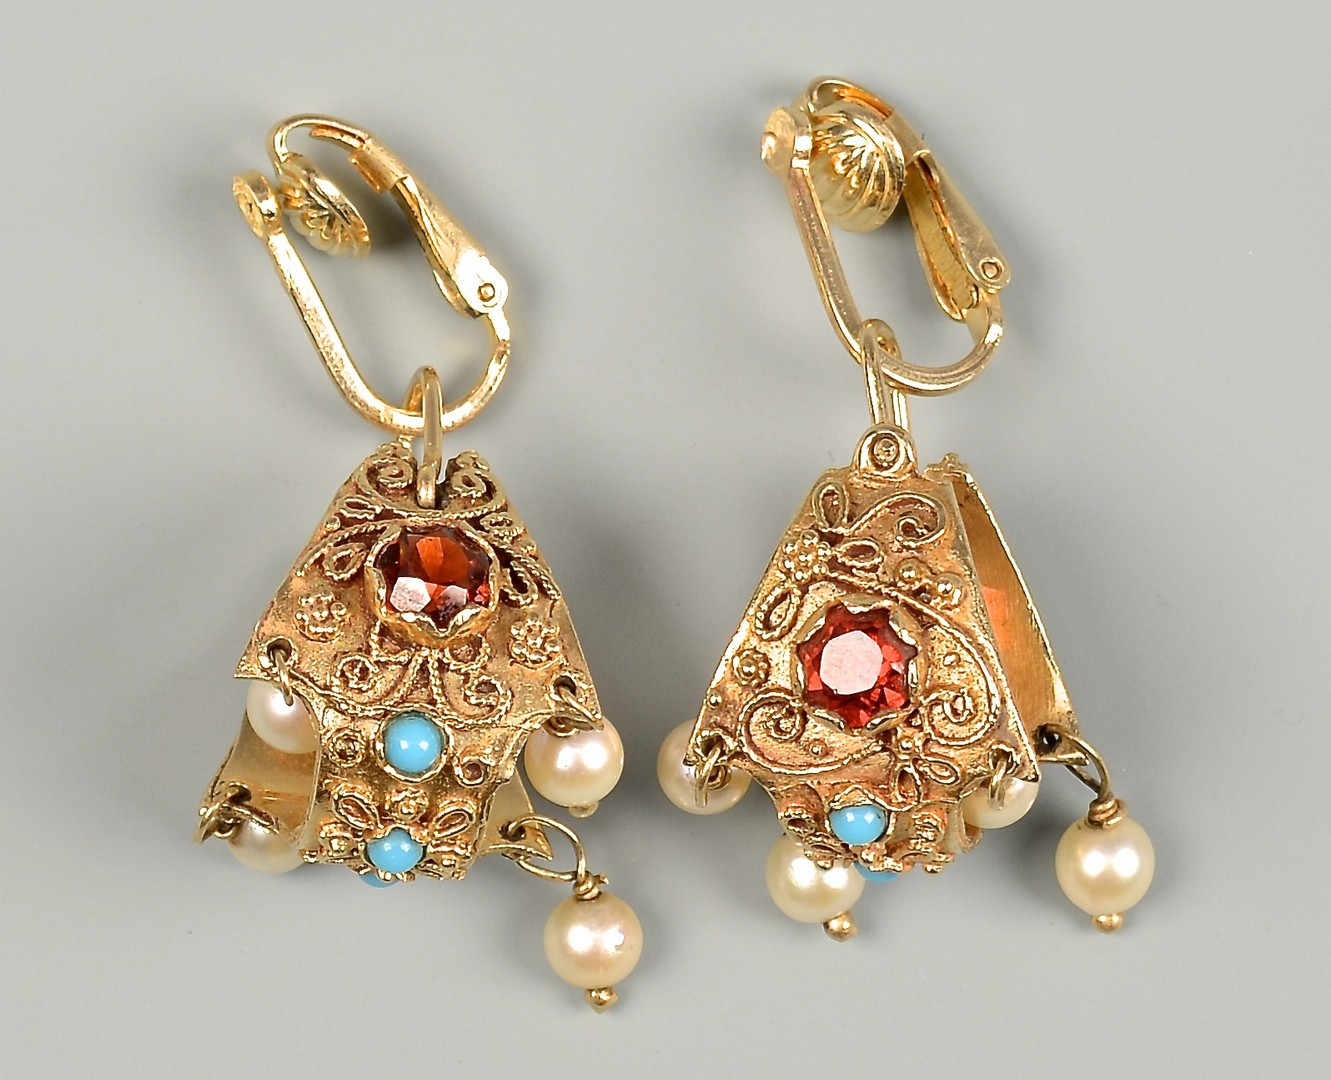 Lot 596: 2 Pr 14K Earrings w/ Diamonds & other